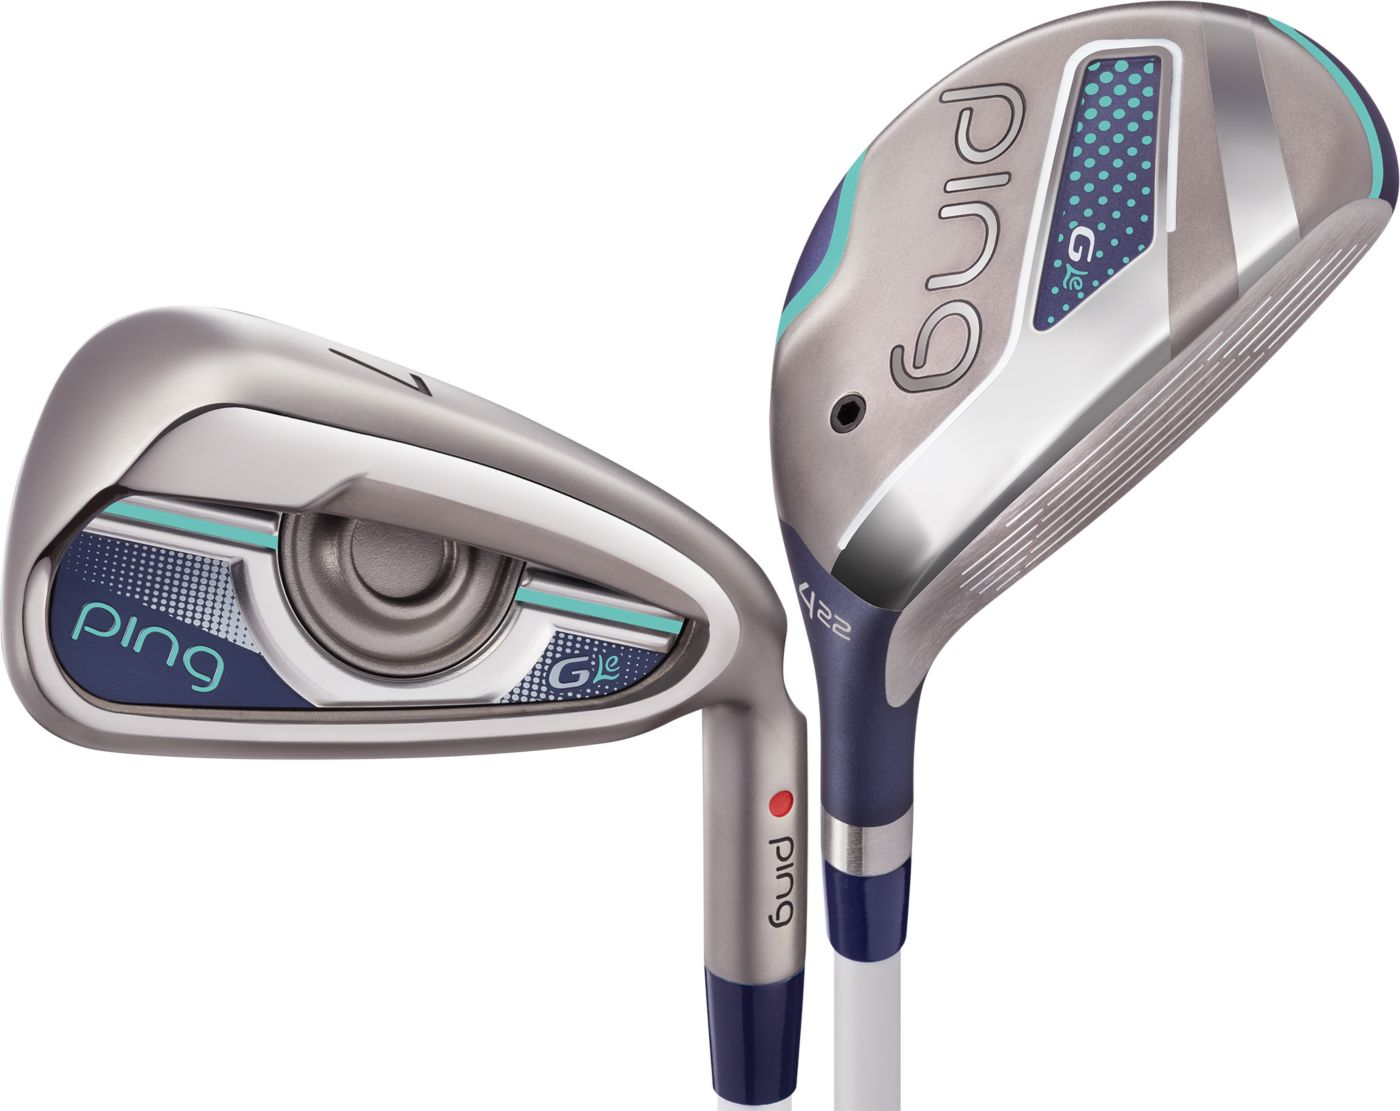 PING Women's G Le Hybrids/Irons - Graphite